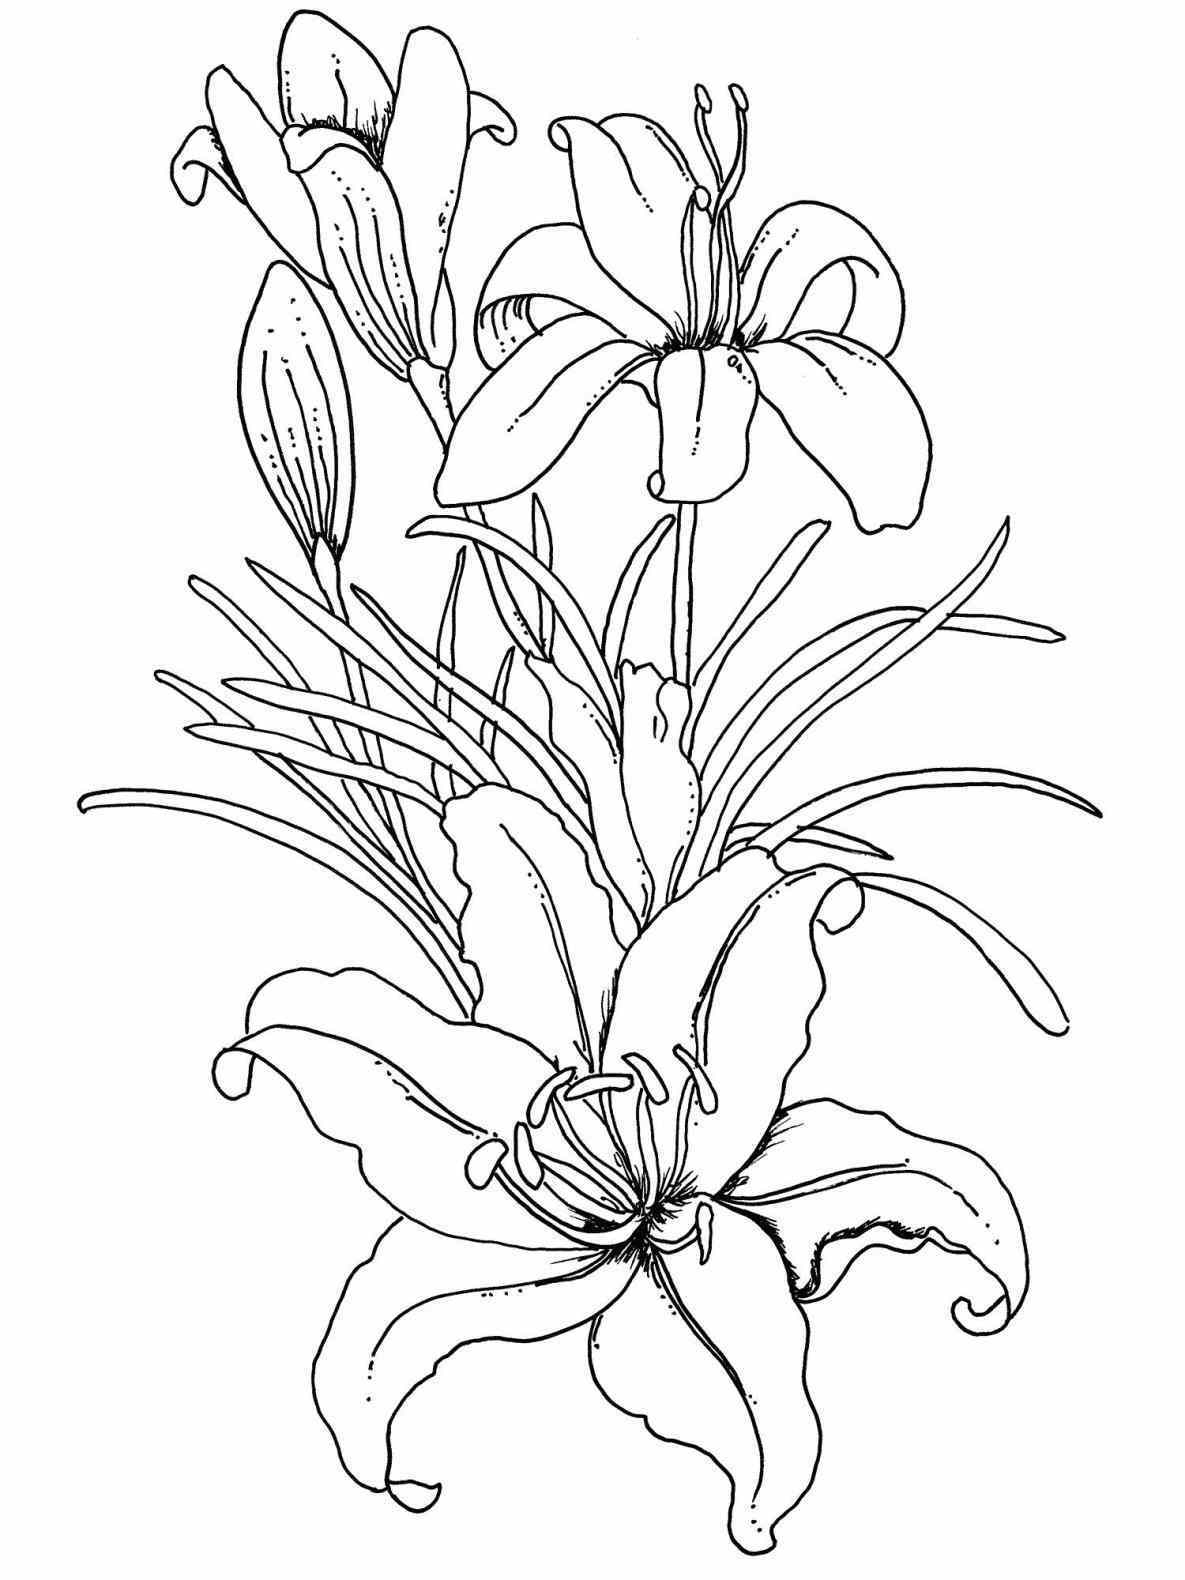 1185x1580 Drawing Flower Coloring Pages For Kids Best Pictures To Print How